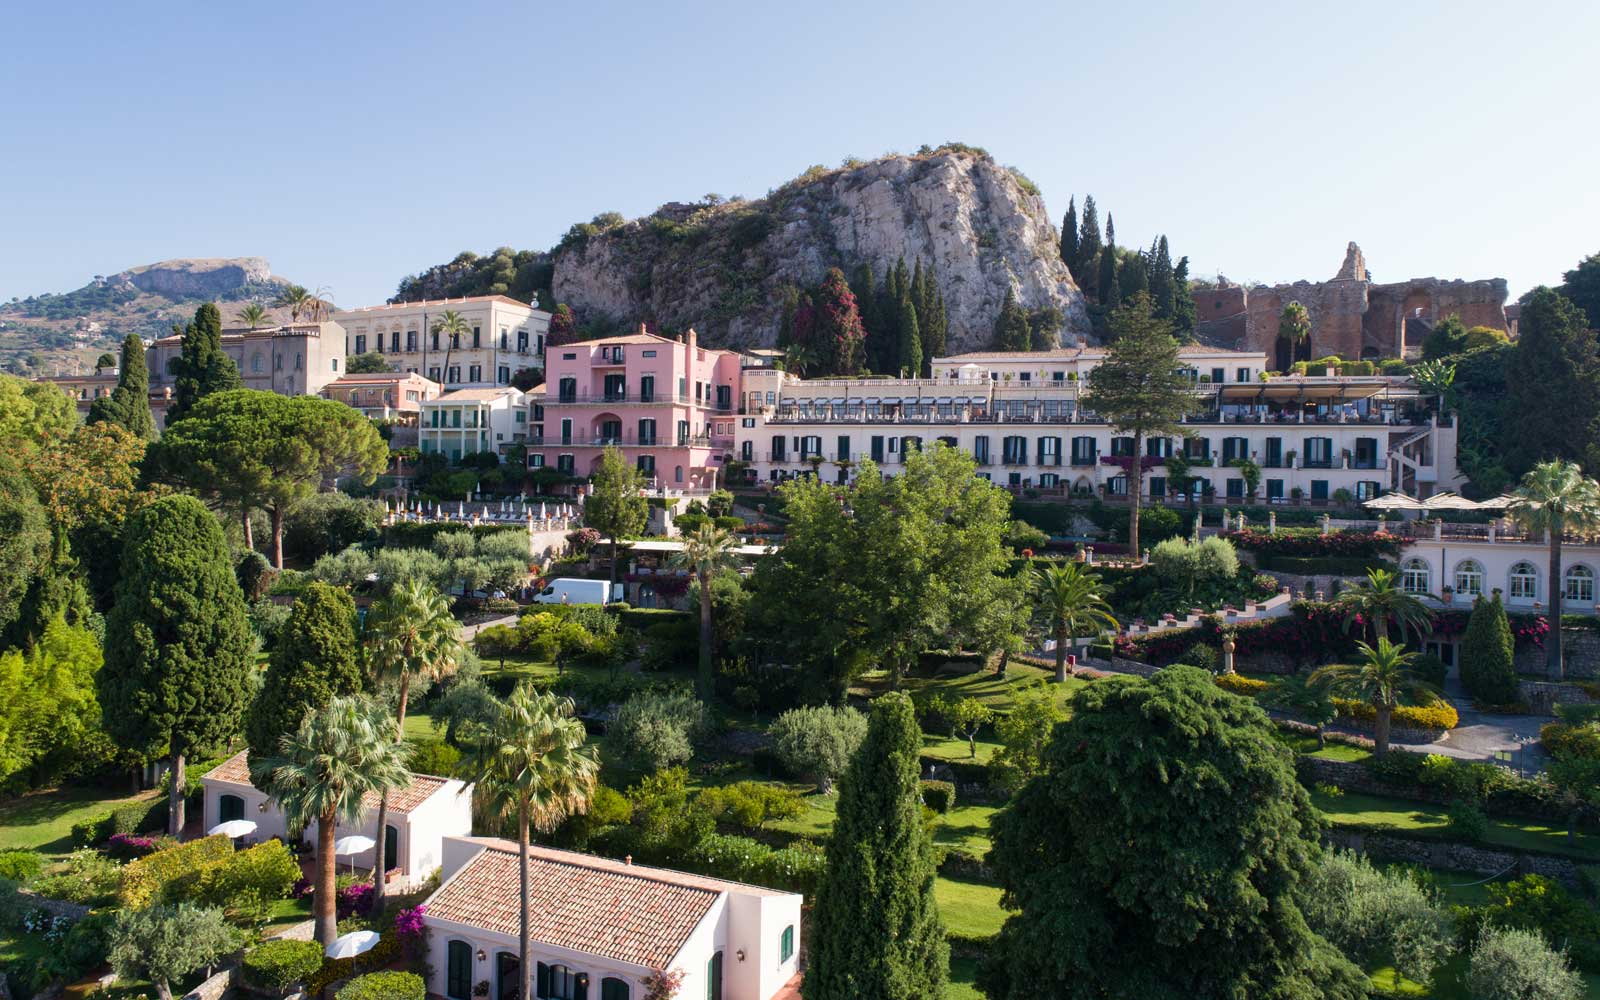 LVMH to Buy Belmond, Making Some of the World's Most Luxurious Hotels Even More Glamorous